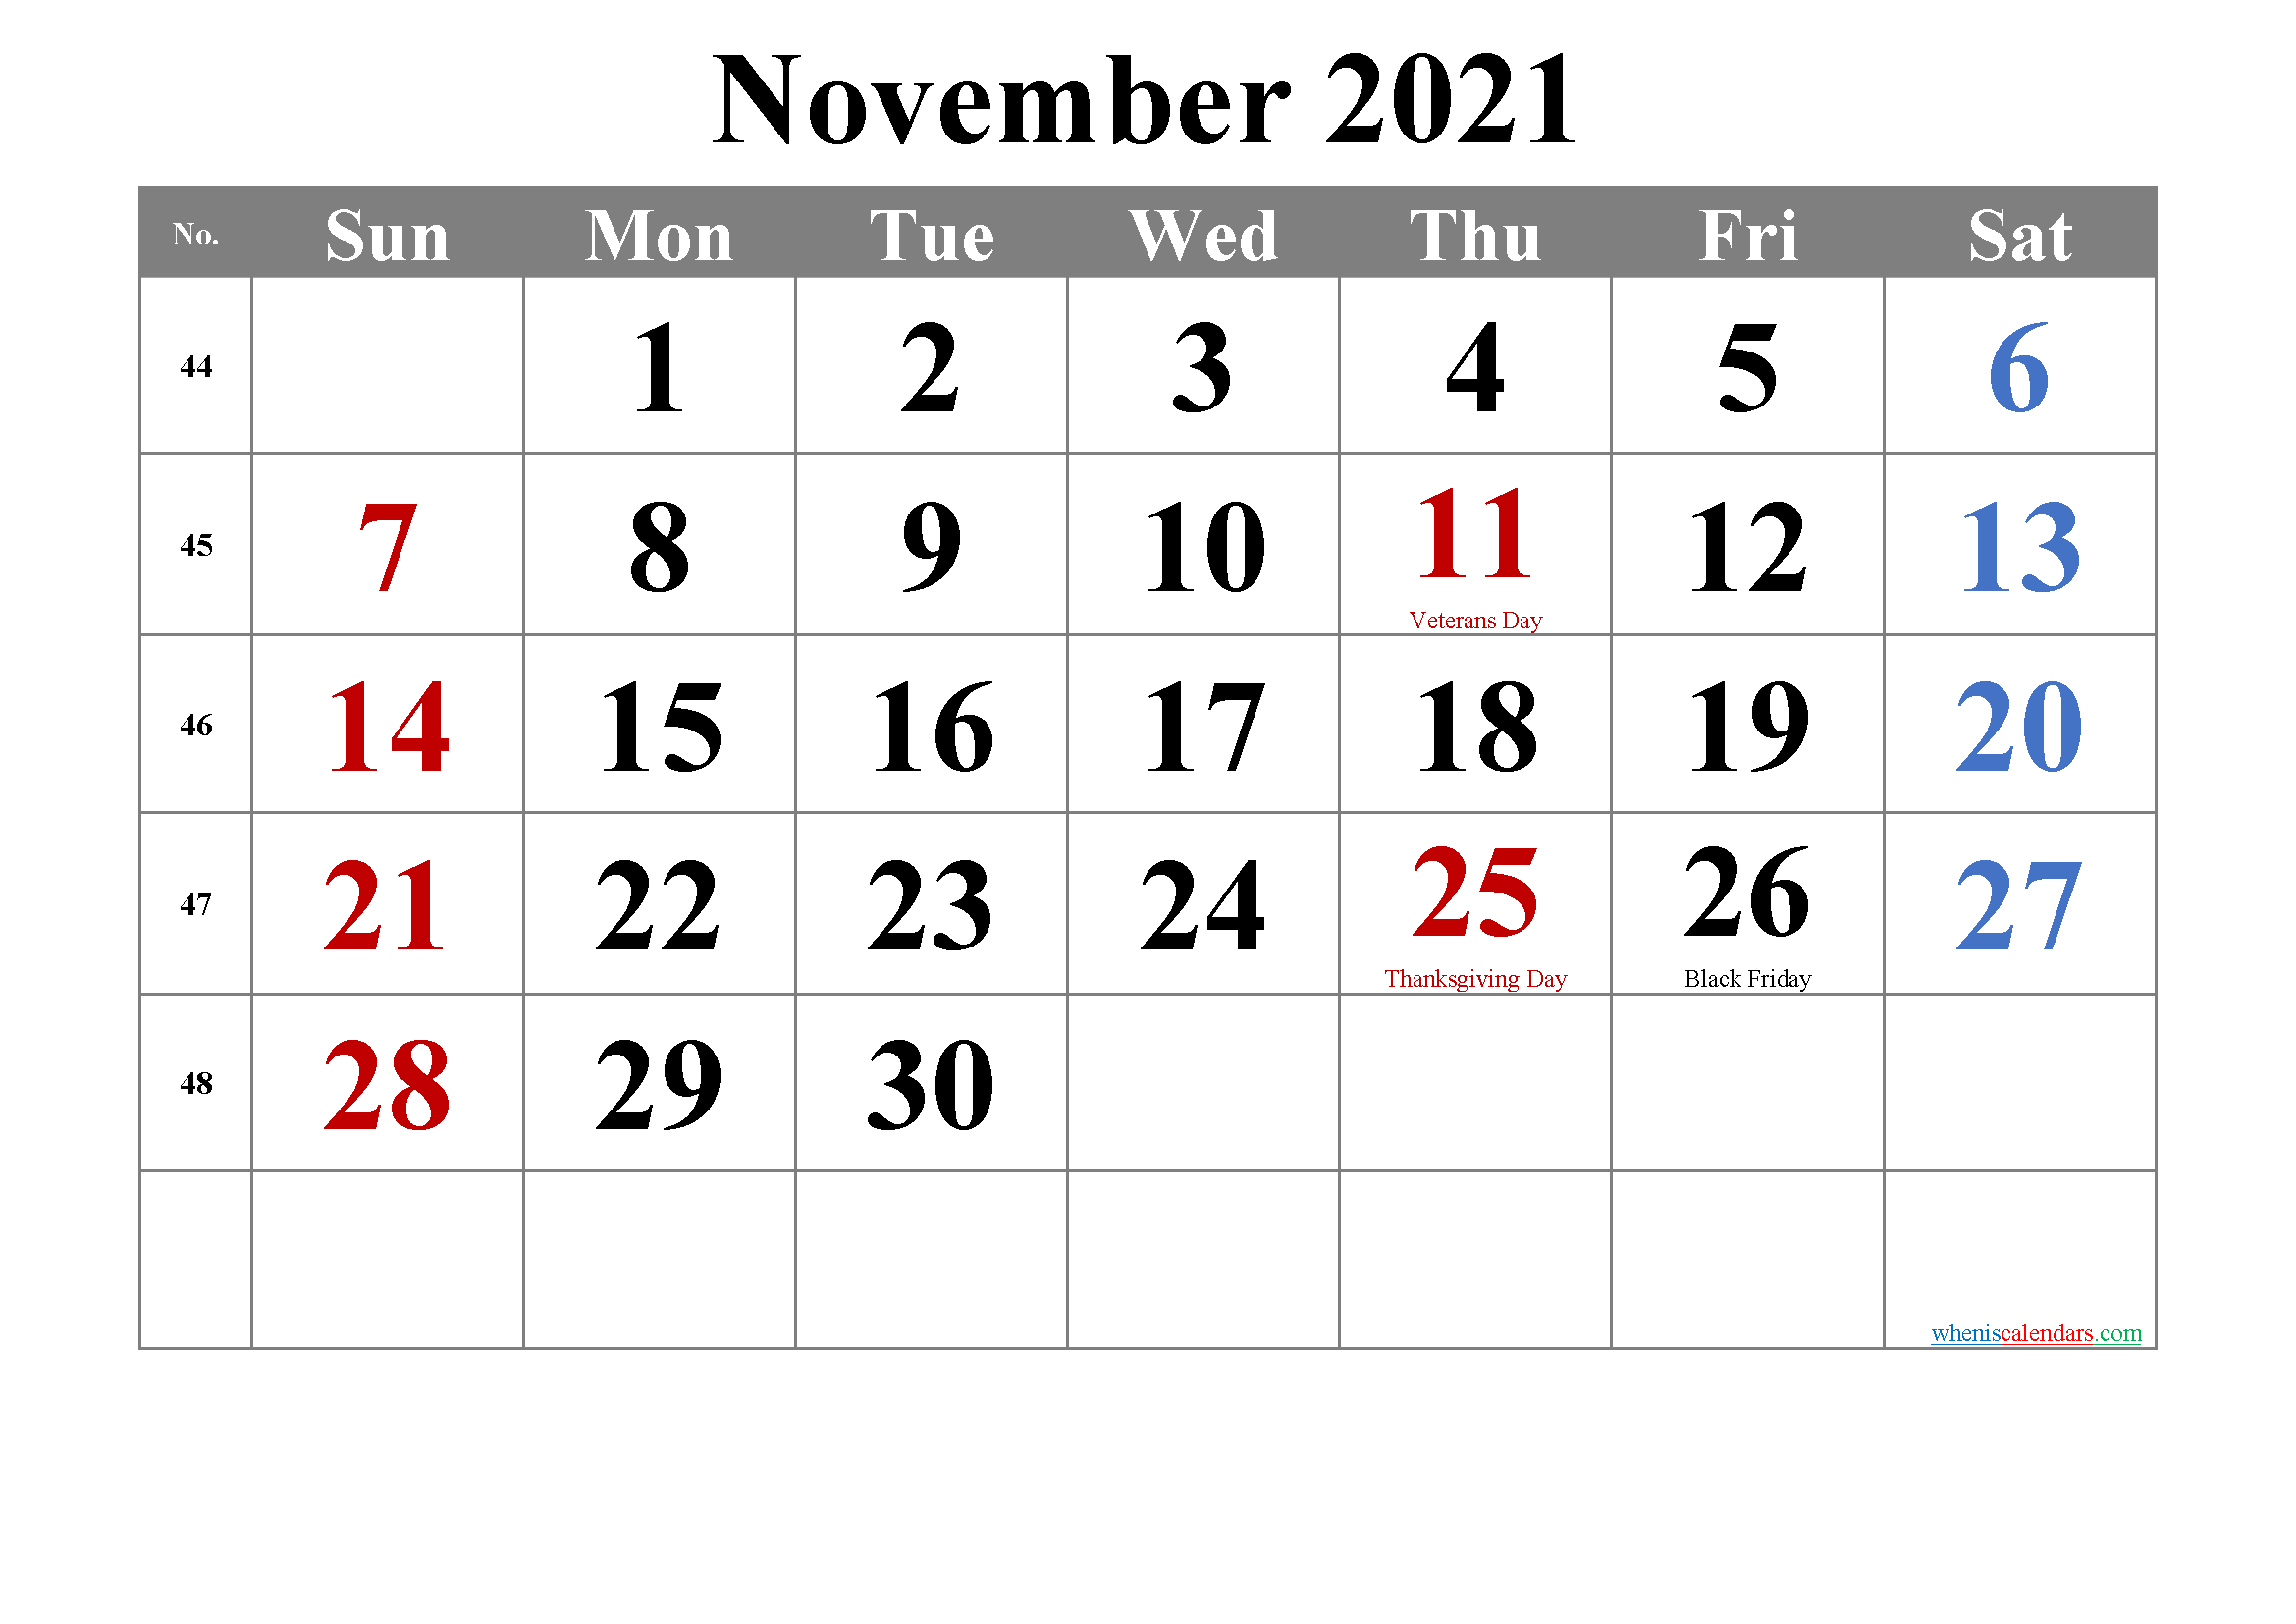 November 2021 Calendar with Holidays Printable